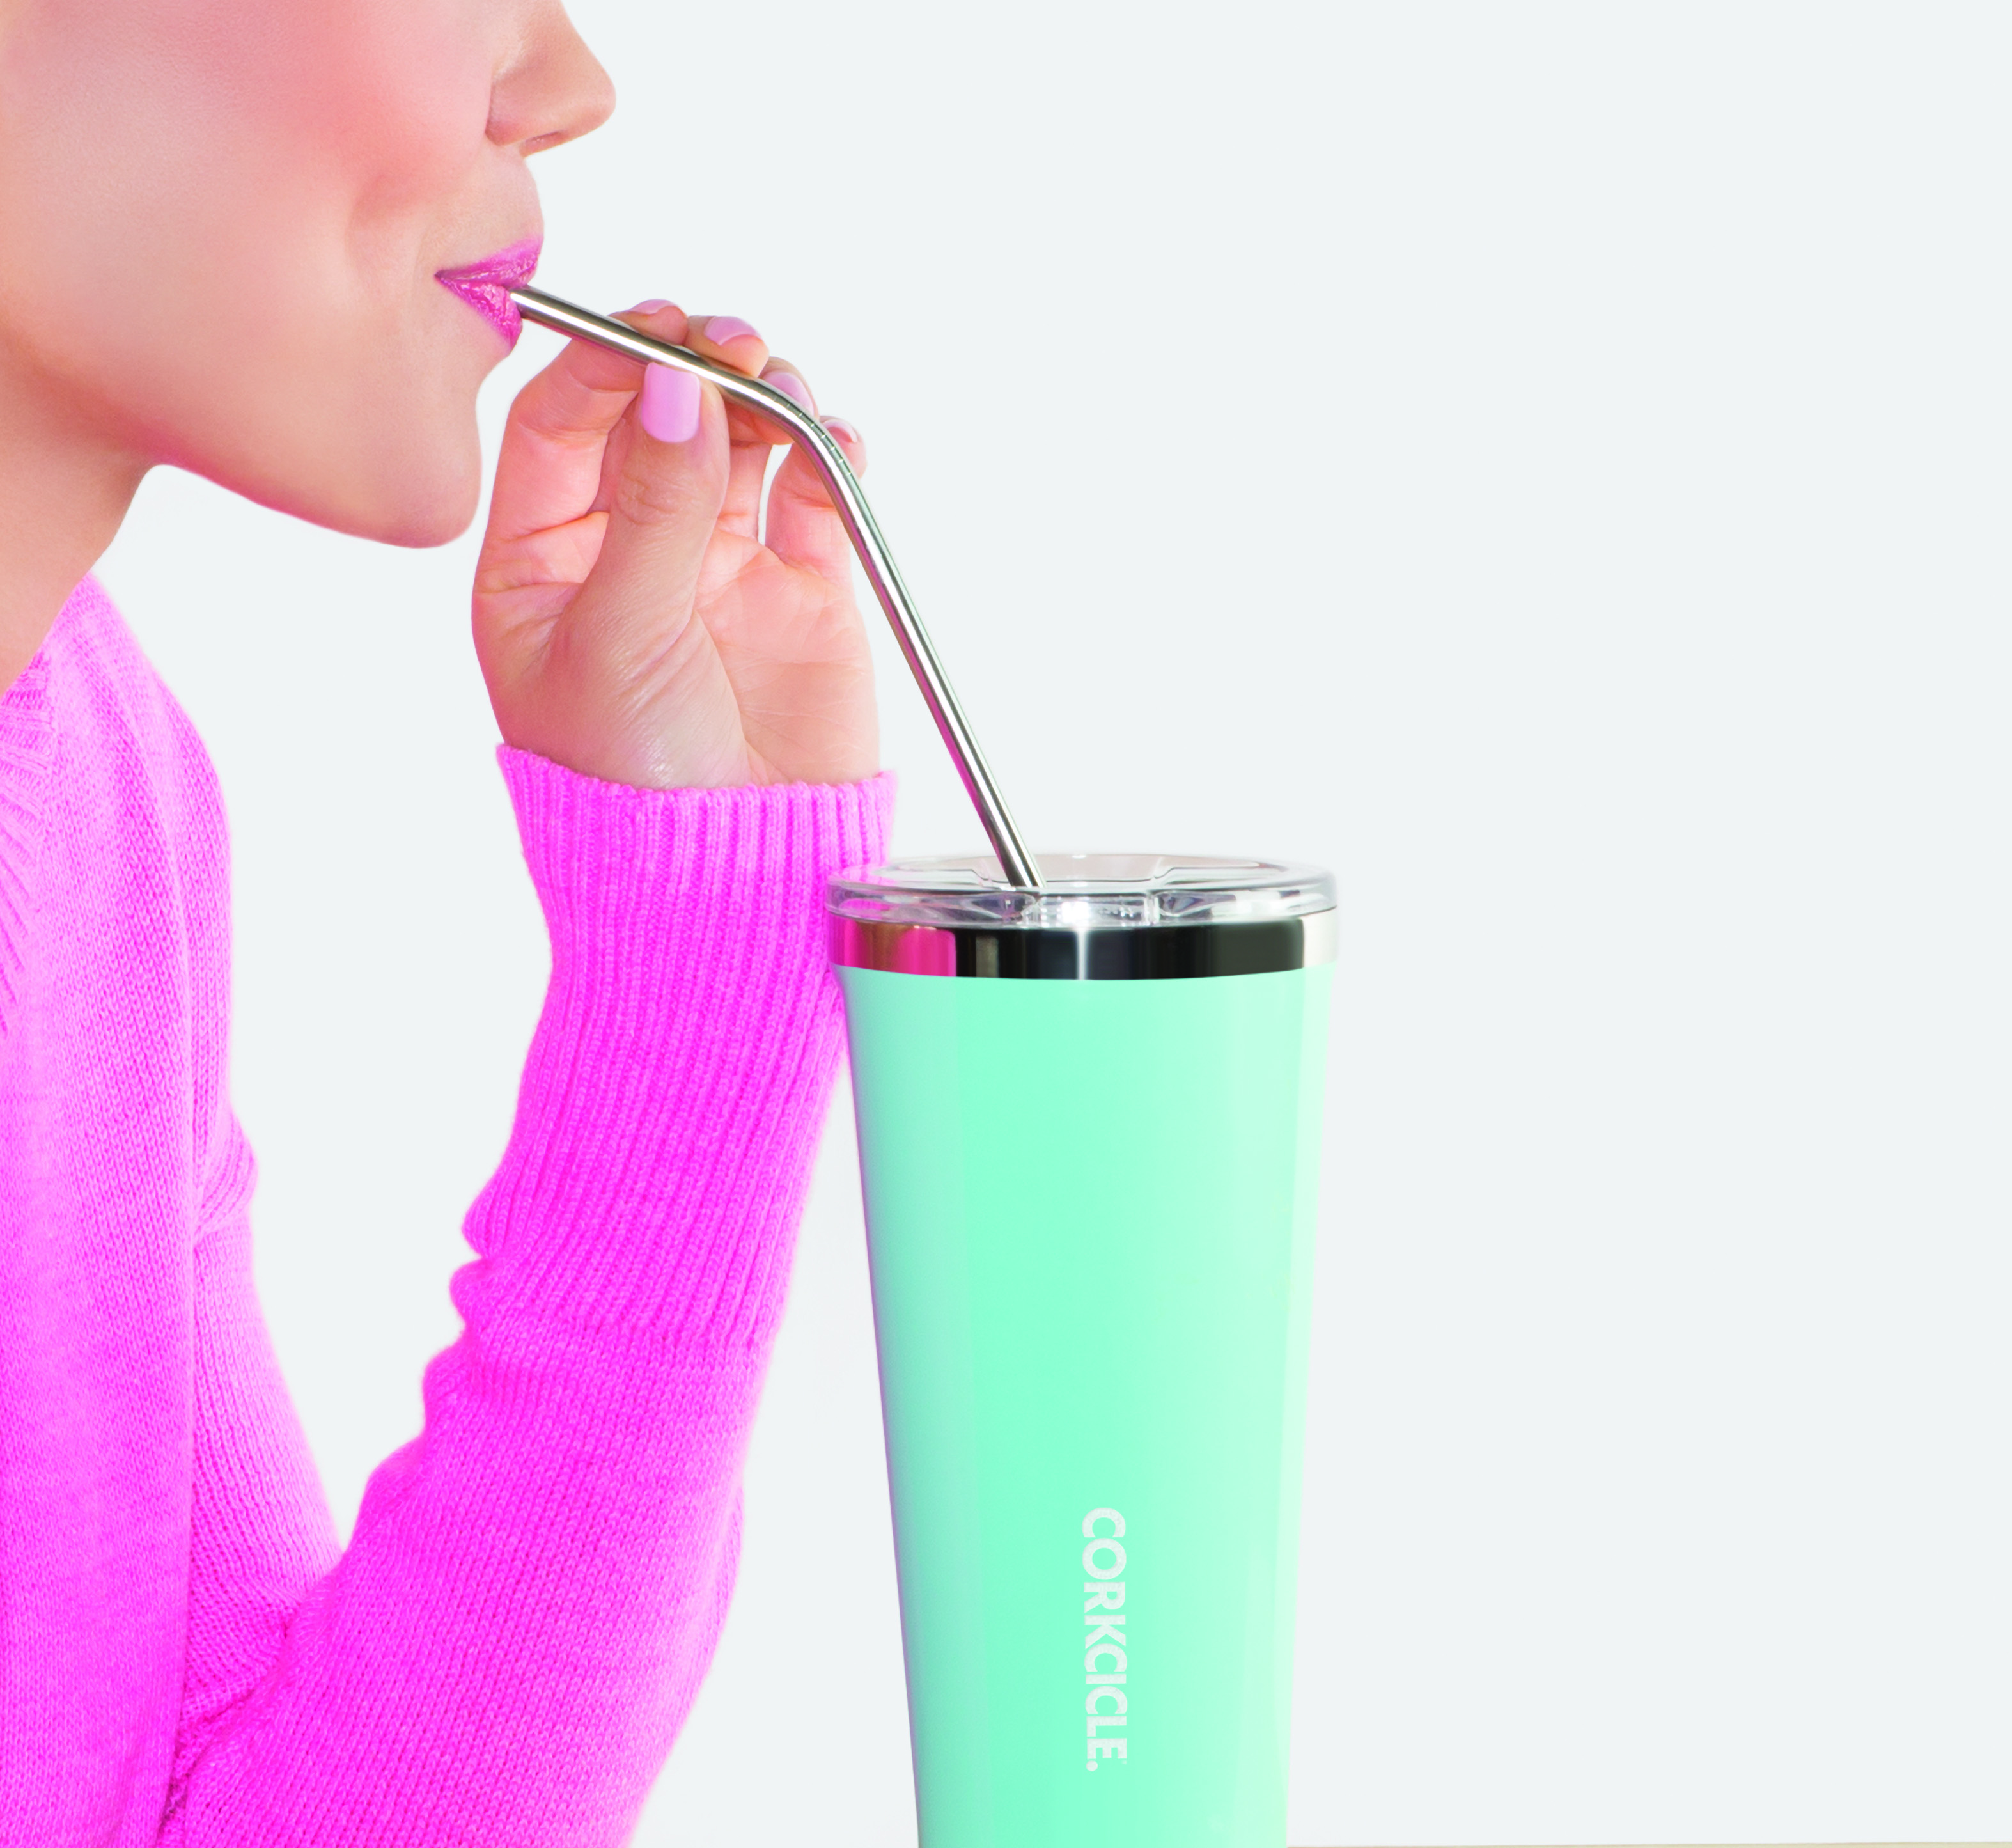 Corkcicle Tumbler Straws - Altruist by Ryan's Daughters